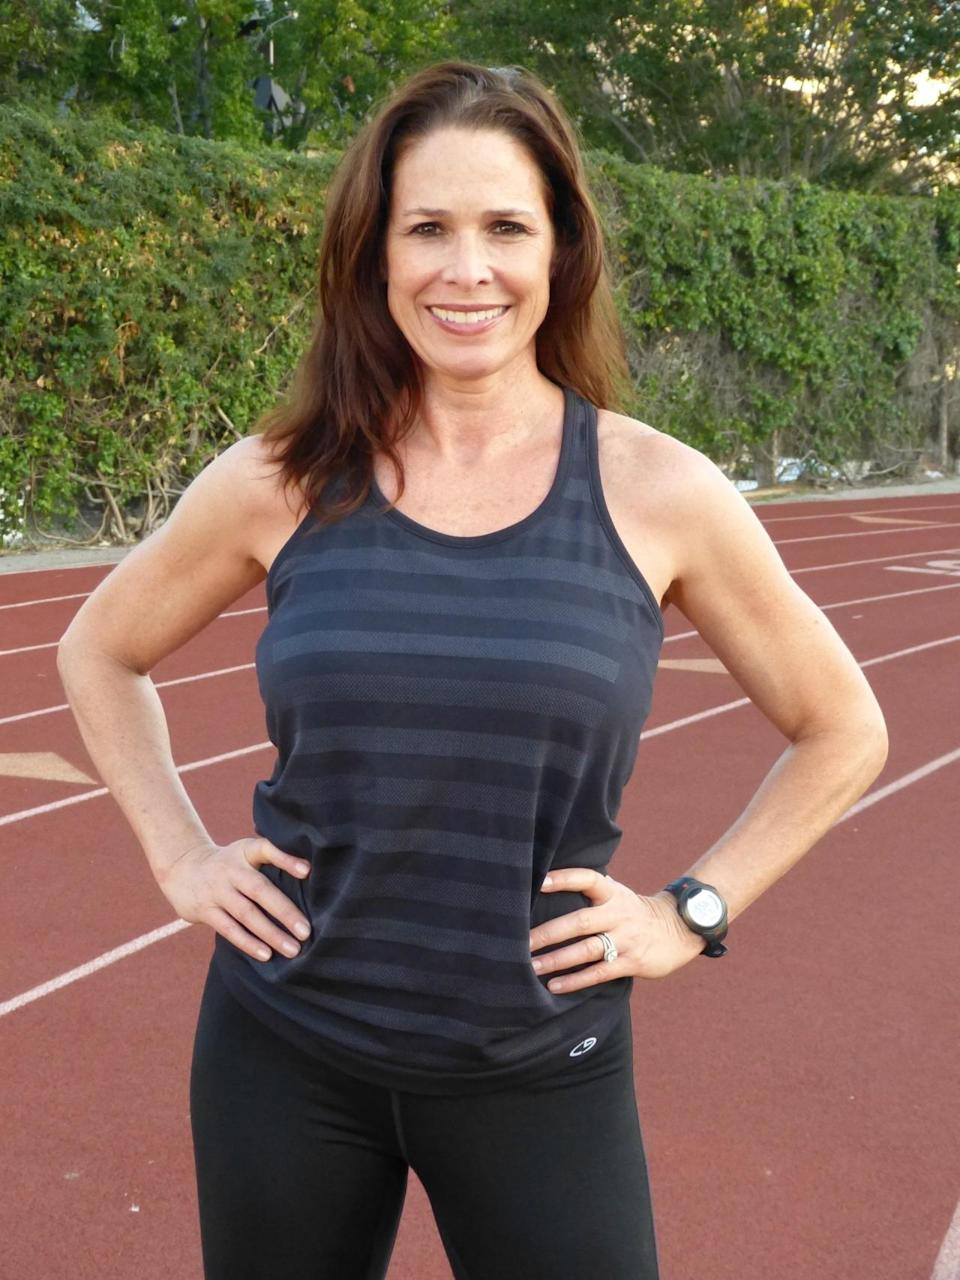 """<p>I run marathons because they prepare you for life. I'm never more disciplined, tough, focused, and ambitious than I am when I'm training for a marathon.</p><p><i>—Treva Brandon Scharf, 52, Beverly Hills, California. Five-time marathon finisher, certified personal trainer, <a href=""""https://www.laprogressive.com/author/treva-brandon/"""" rel=""""nofollow noopener"""" target=""""_blank"""" data-ylk=""""slk:fitness blogger"""" class=""""link rapid-noclick-resp"""">fitness blogger</a>. </i></p>"""